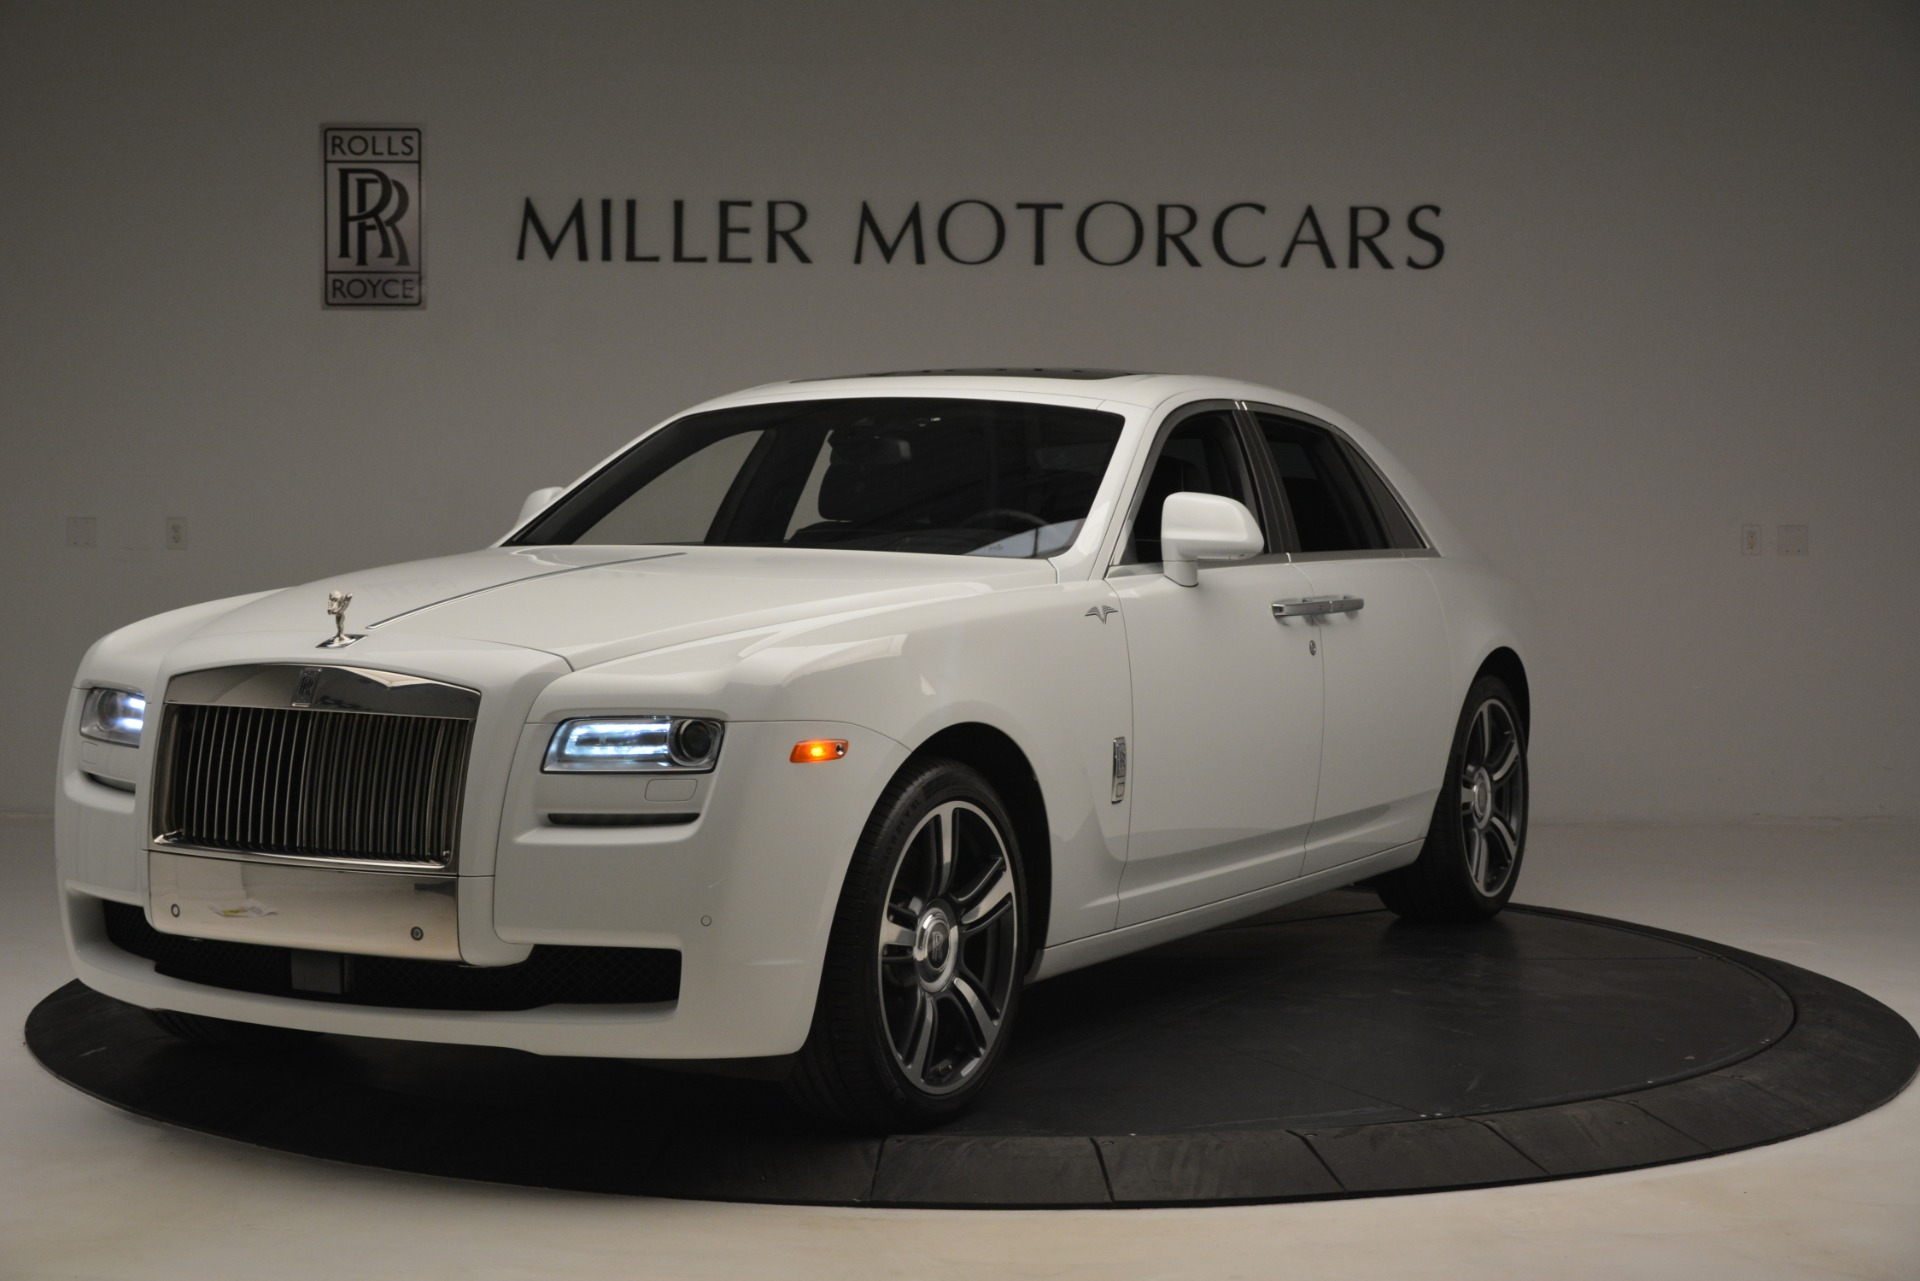 Used 2014 Rolls-Royce Ghost V-Spec for sale Sold at McLaren Greenwich in Greenwich CT 06830 1